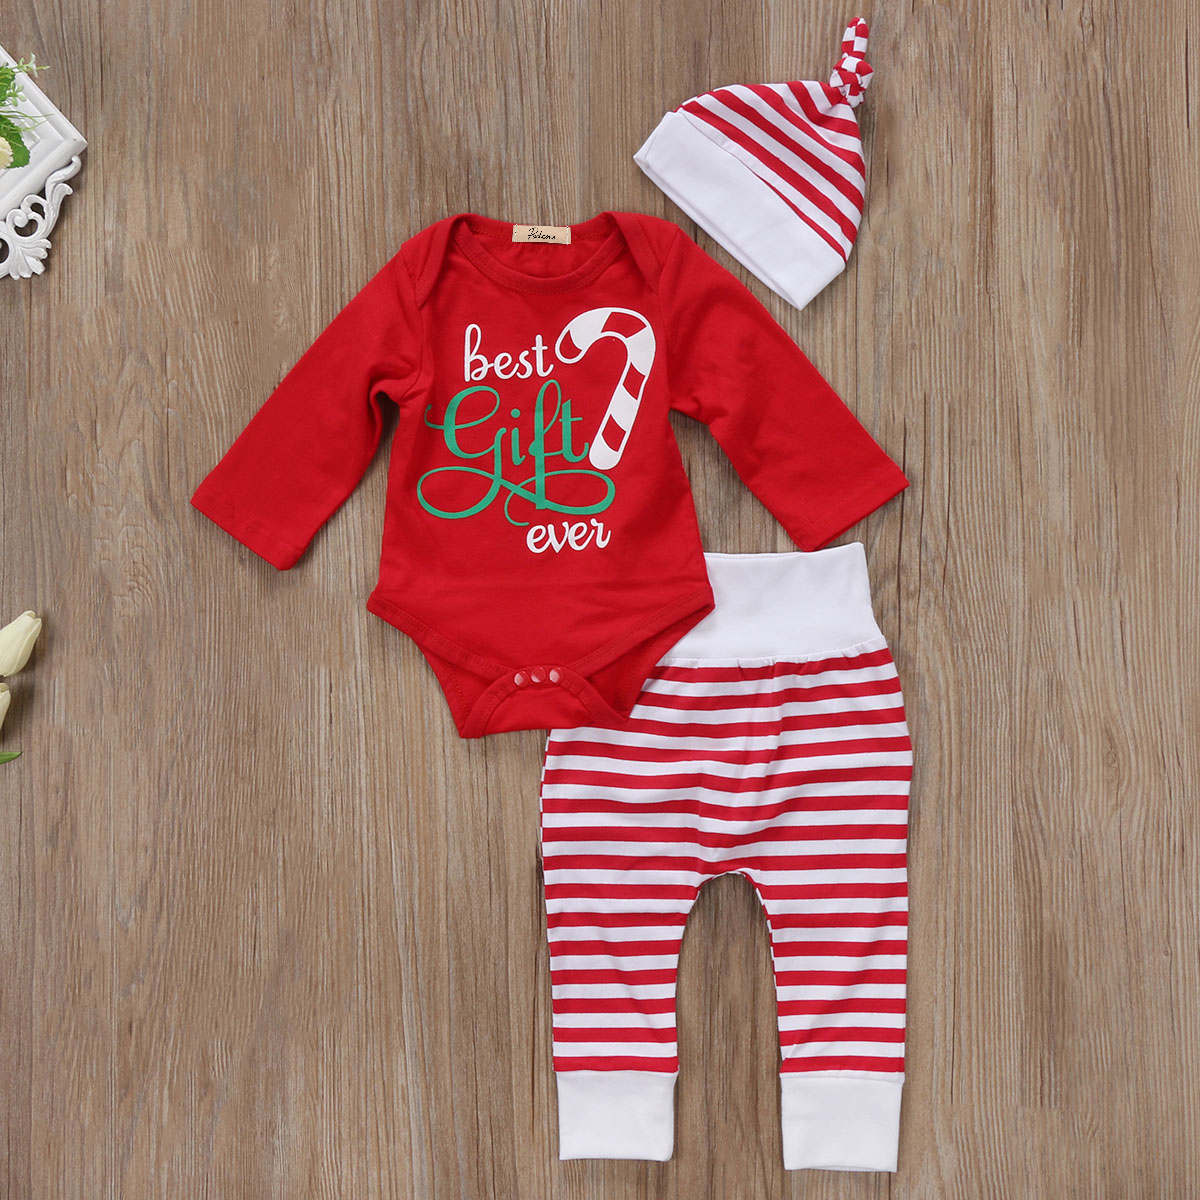 Newborn Baby Girls Boys Christmas Clothes Set Long Sleeve Romper Tops Striped Pants Hat Cute Winter Fall Clothes Xmas Outfit 3pc